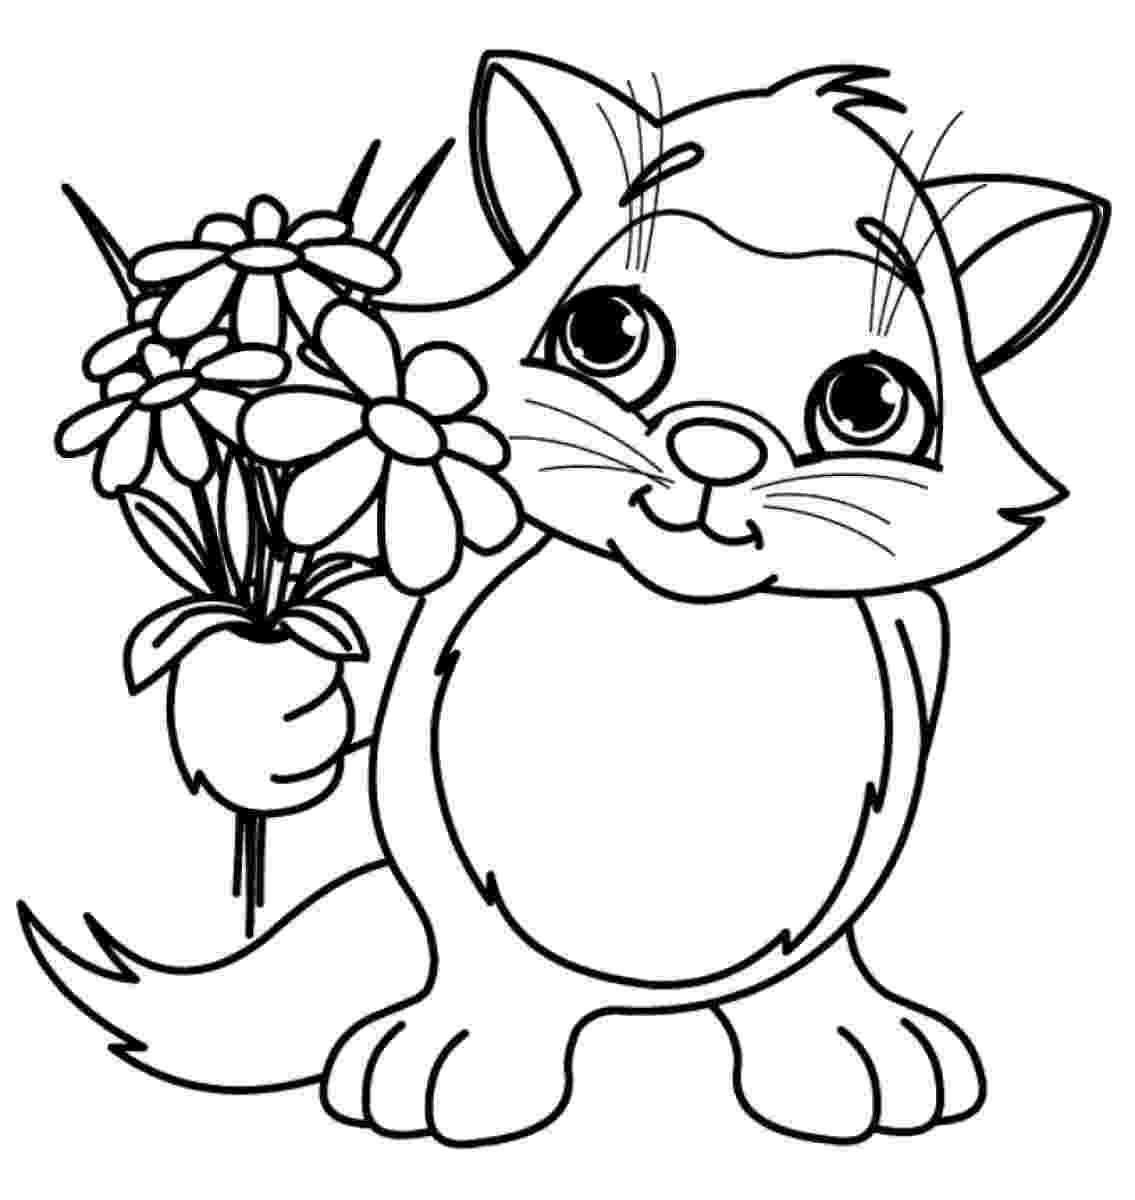 free coloring pictures of flowers free printable flower coloring pages for kids best coloring free of pictures flowers